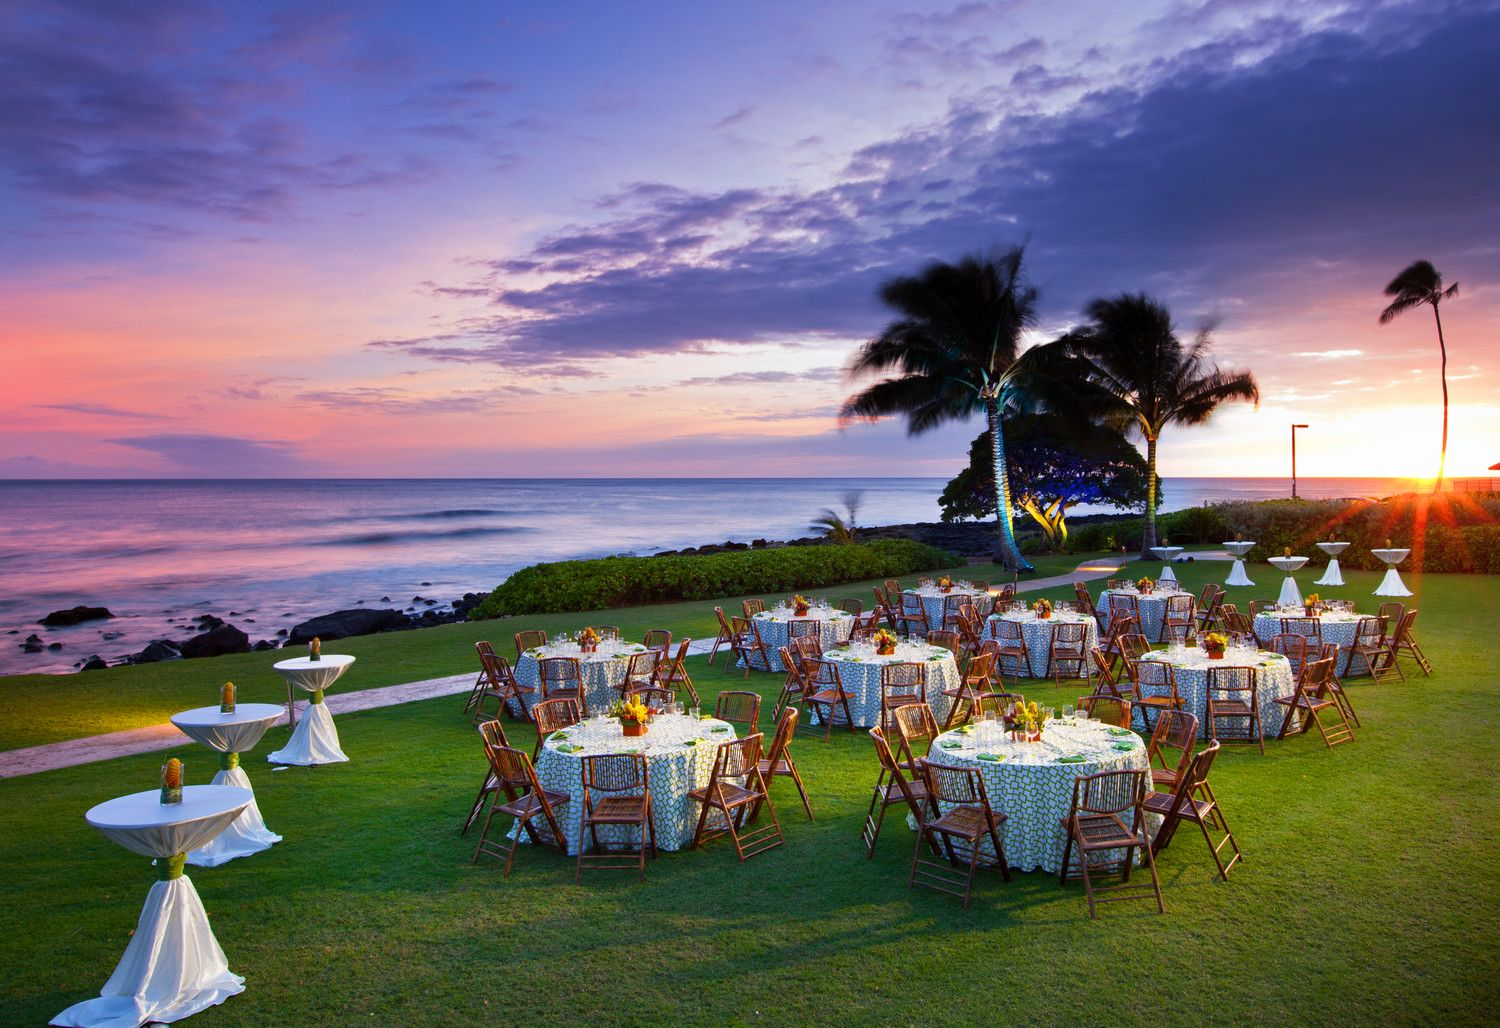 Kauai Beach Wedding - Ocean Cove Reception